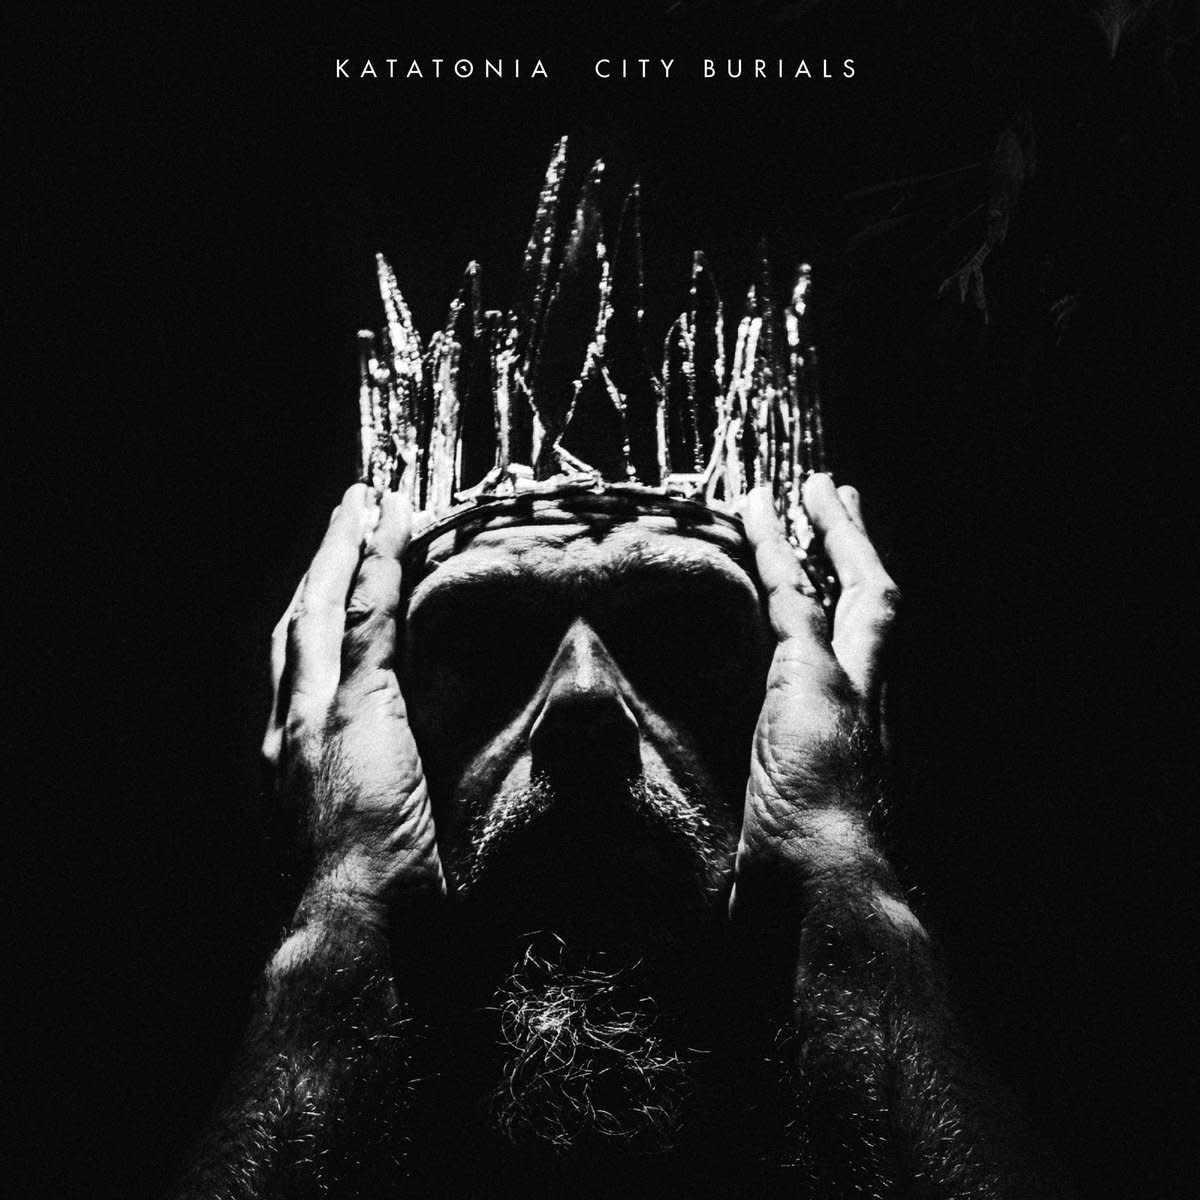 The album's cover shows a king trying to put on his crown. City Burials might as well be considered a king size achievement for Katatonia.